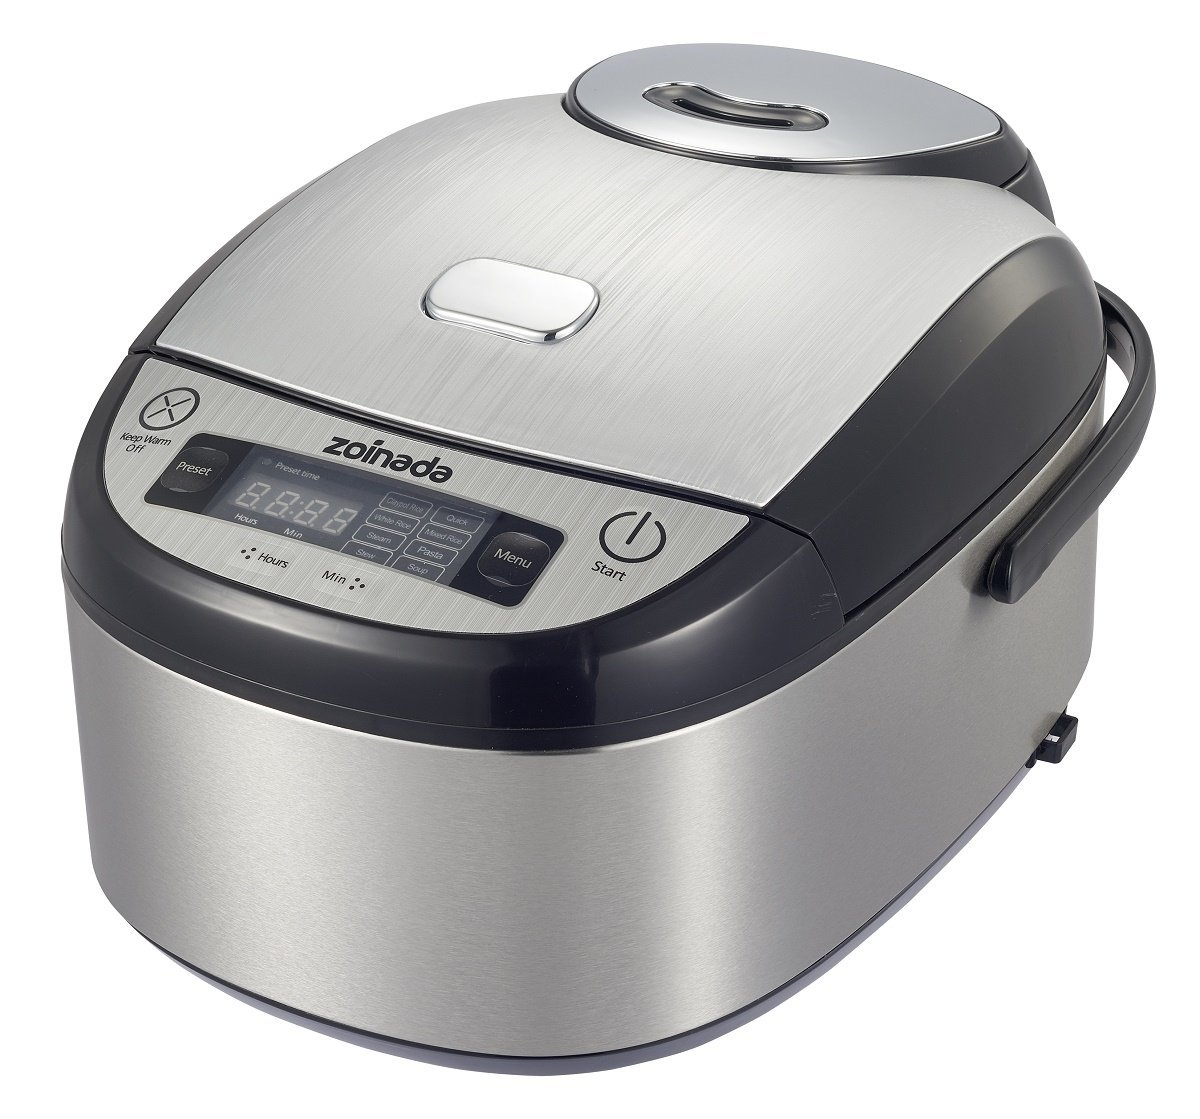 Rice Cooker 401BC-1 8 Cups(uncooked) 8-in-1 Programmable Multi Cooker,Slow cooker,Food Steamer, 24 Hours Preset, with Cooking Recipe,Stainless Steel,Silver and Black